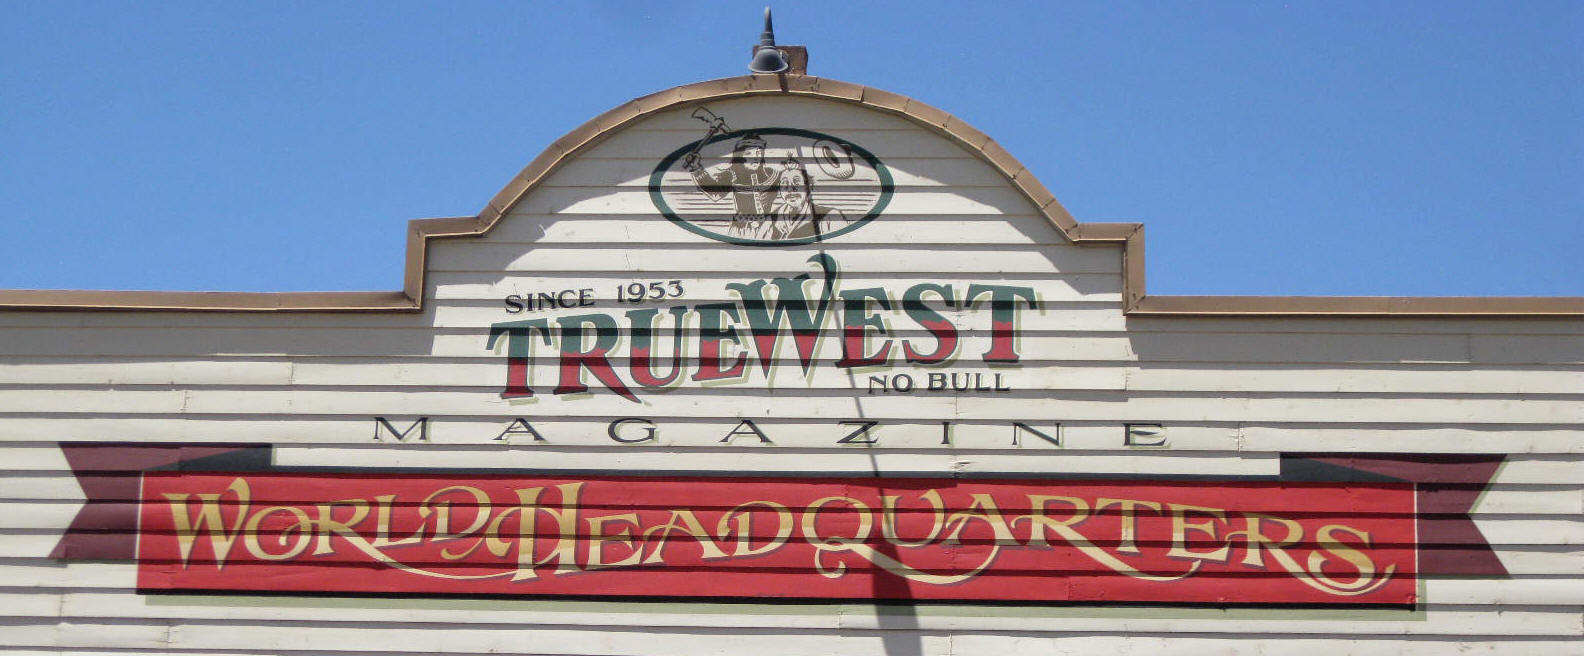 True West Magazine sign